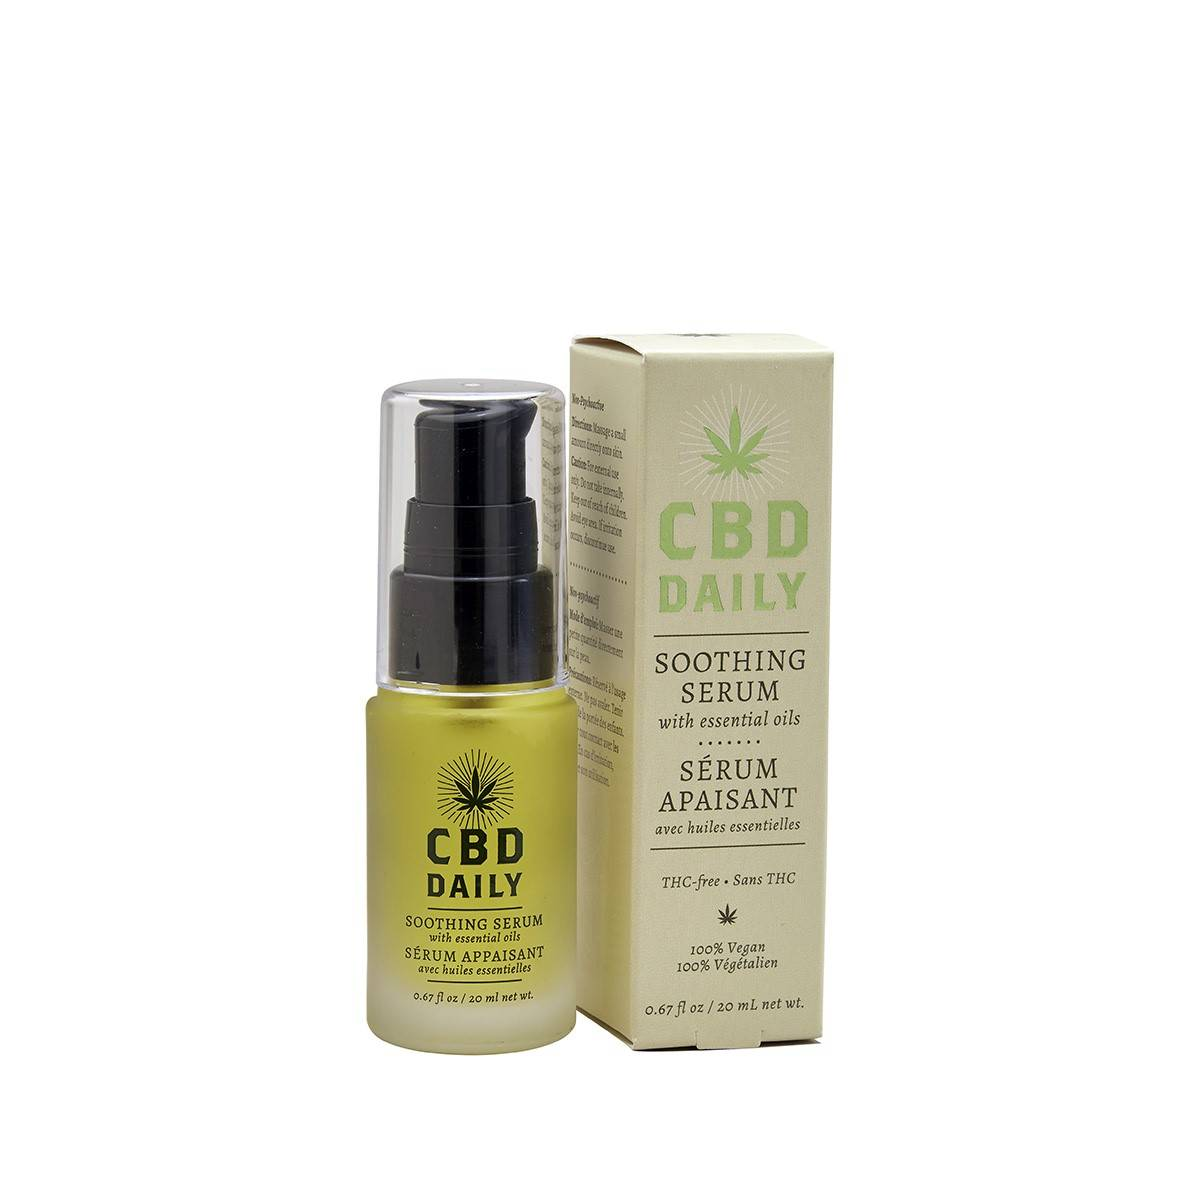 Soothing Serum 20ml Cbd Daily